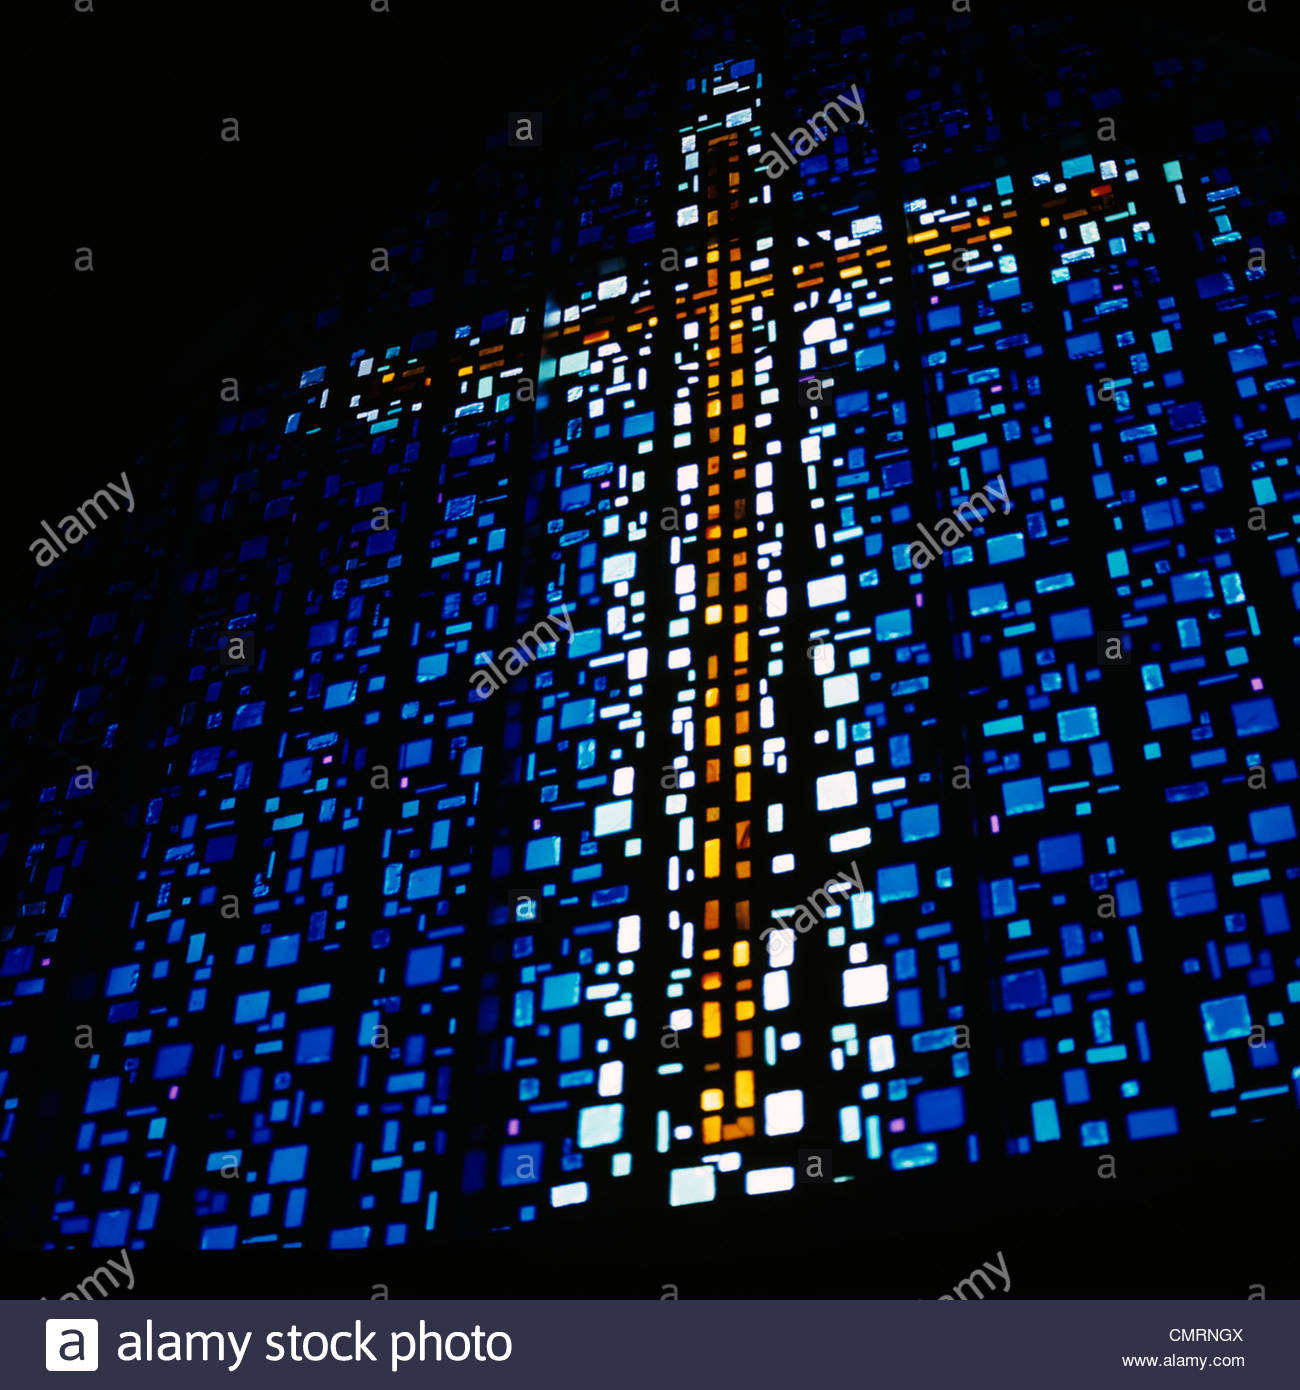 A GOLD CROSS ON BLUE BACKGROUND MADE OF SECTIONS OF A ...